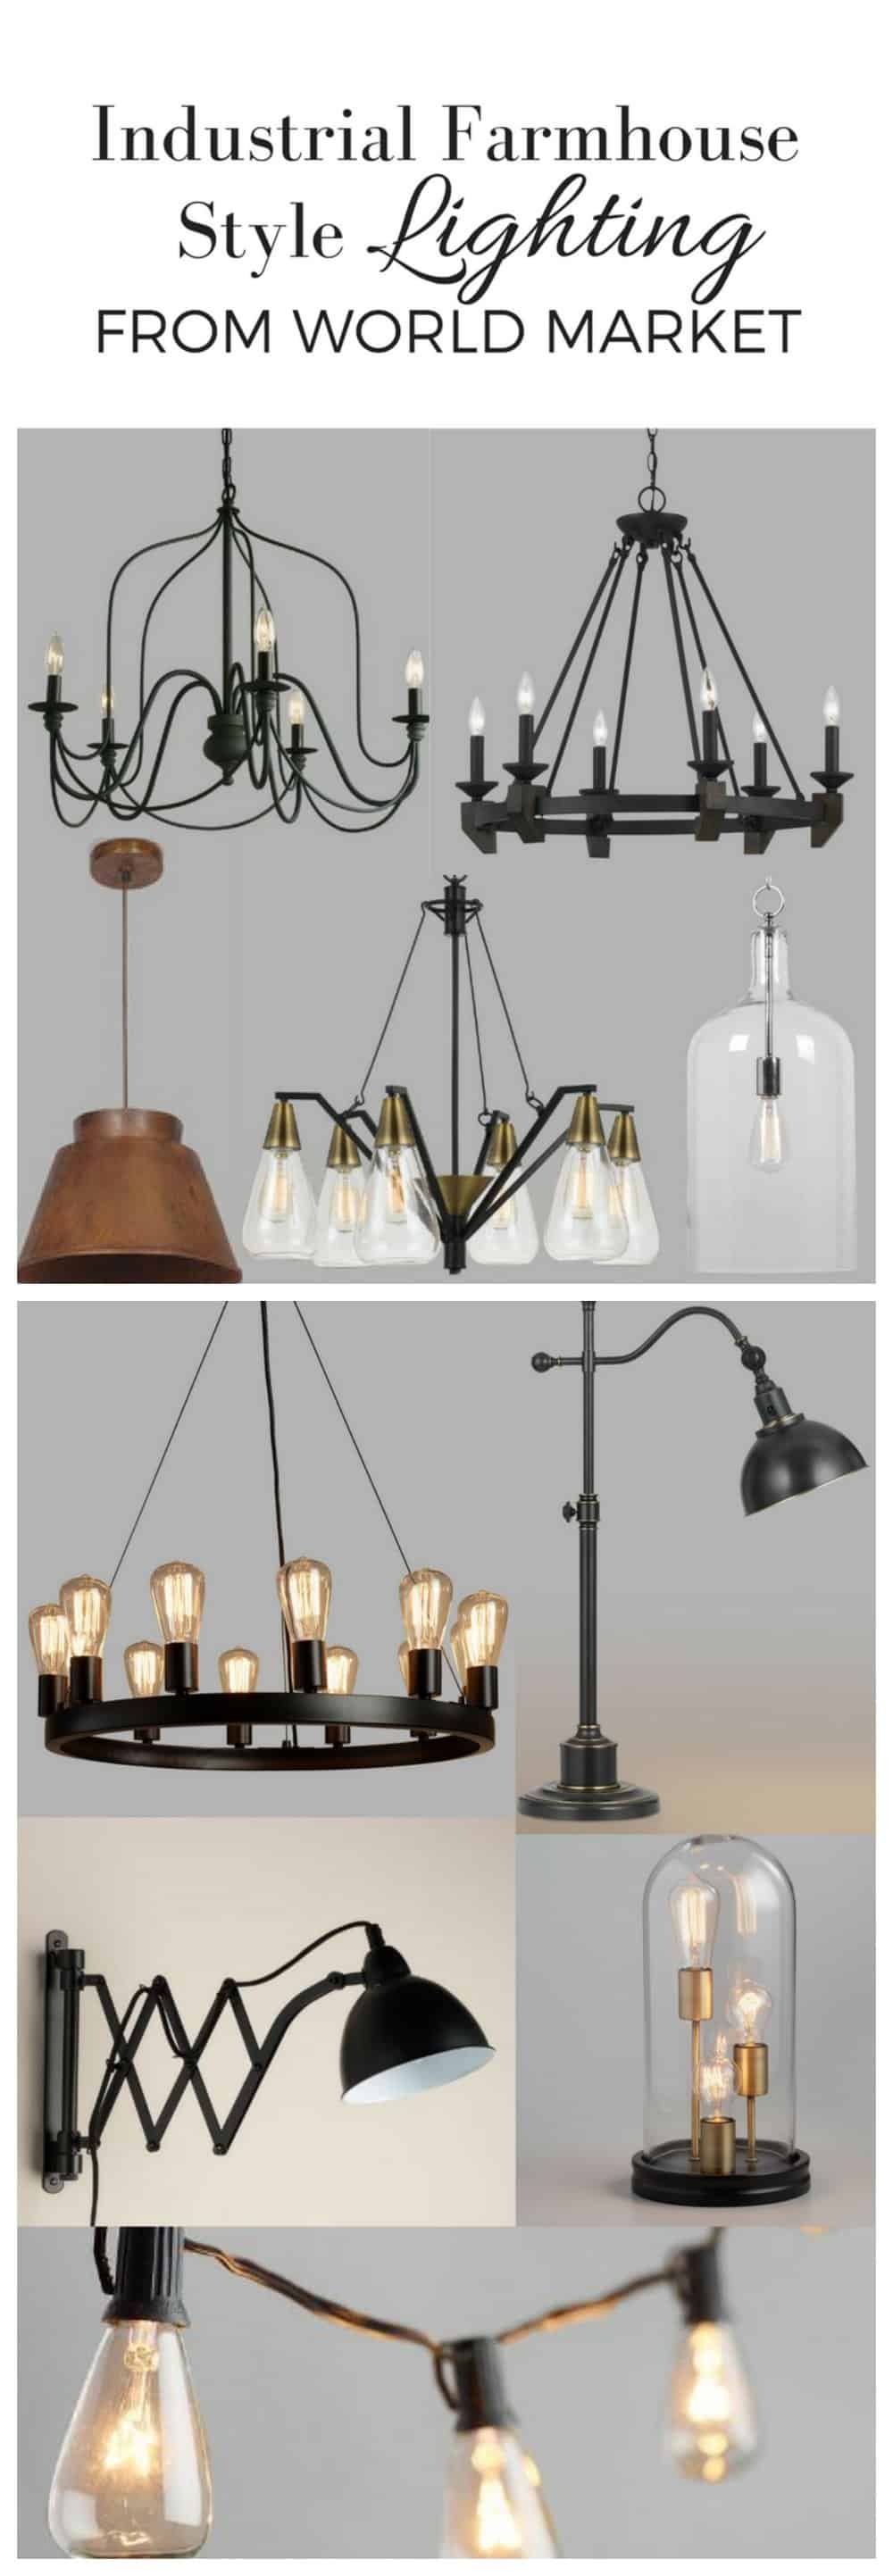 Industrial Farmhouse Style Lighting from World Market Farmhouse